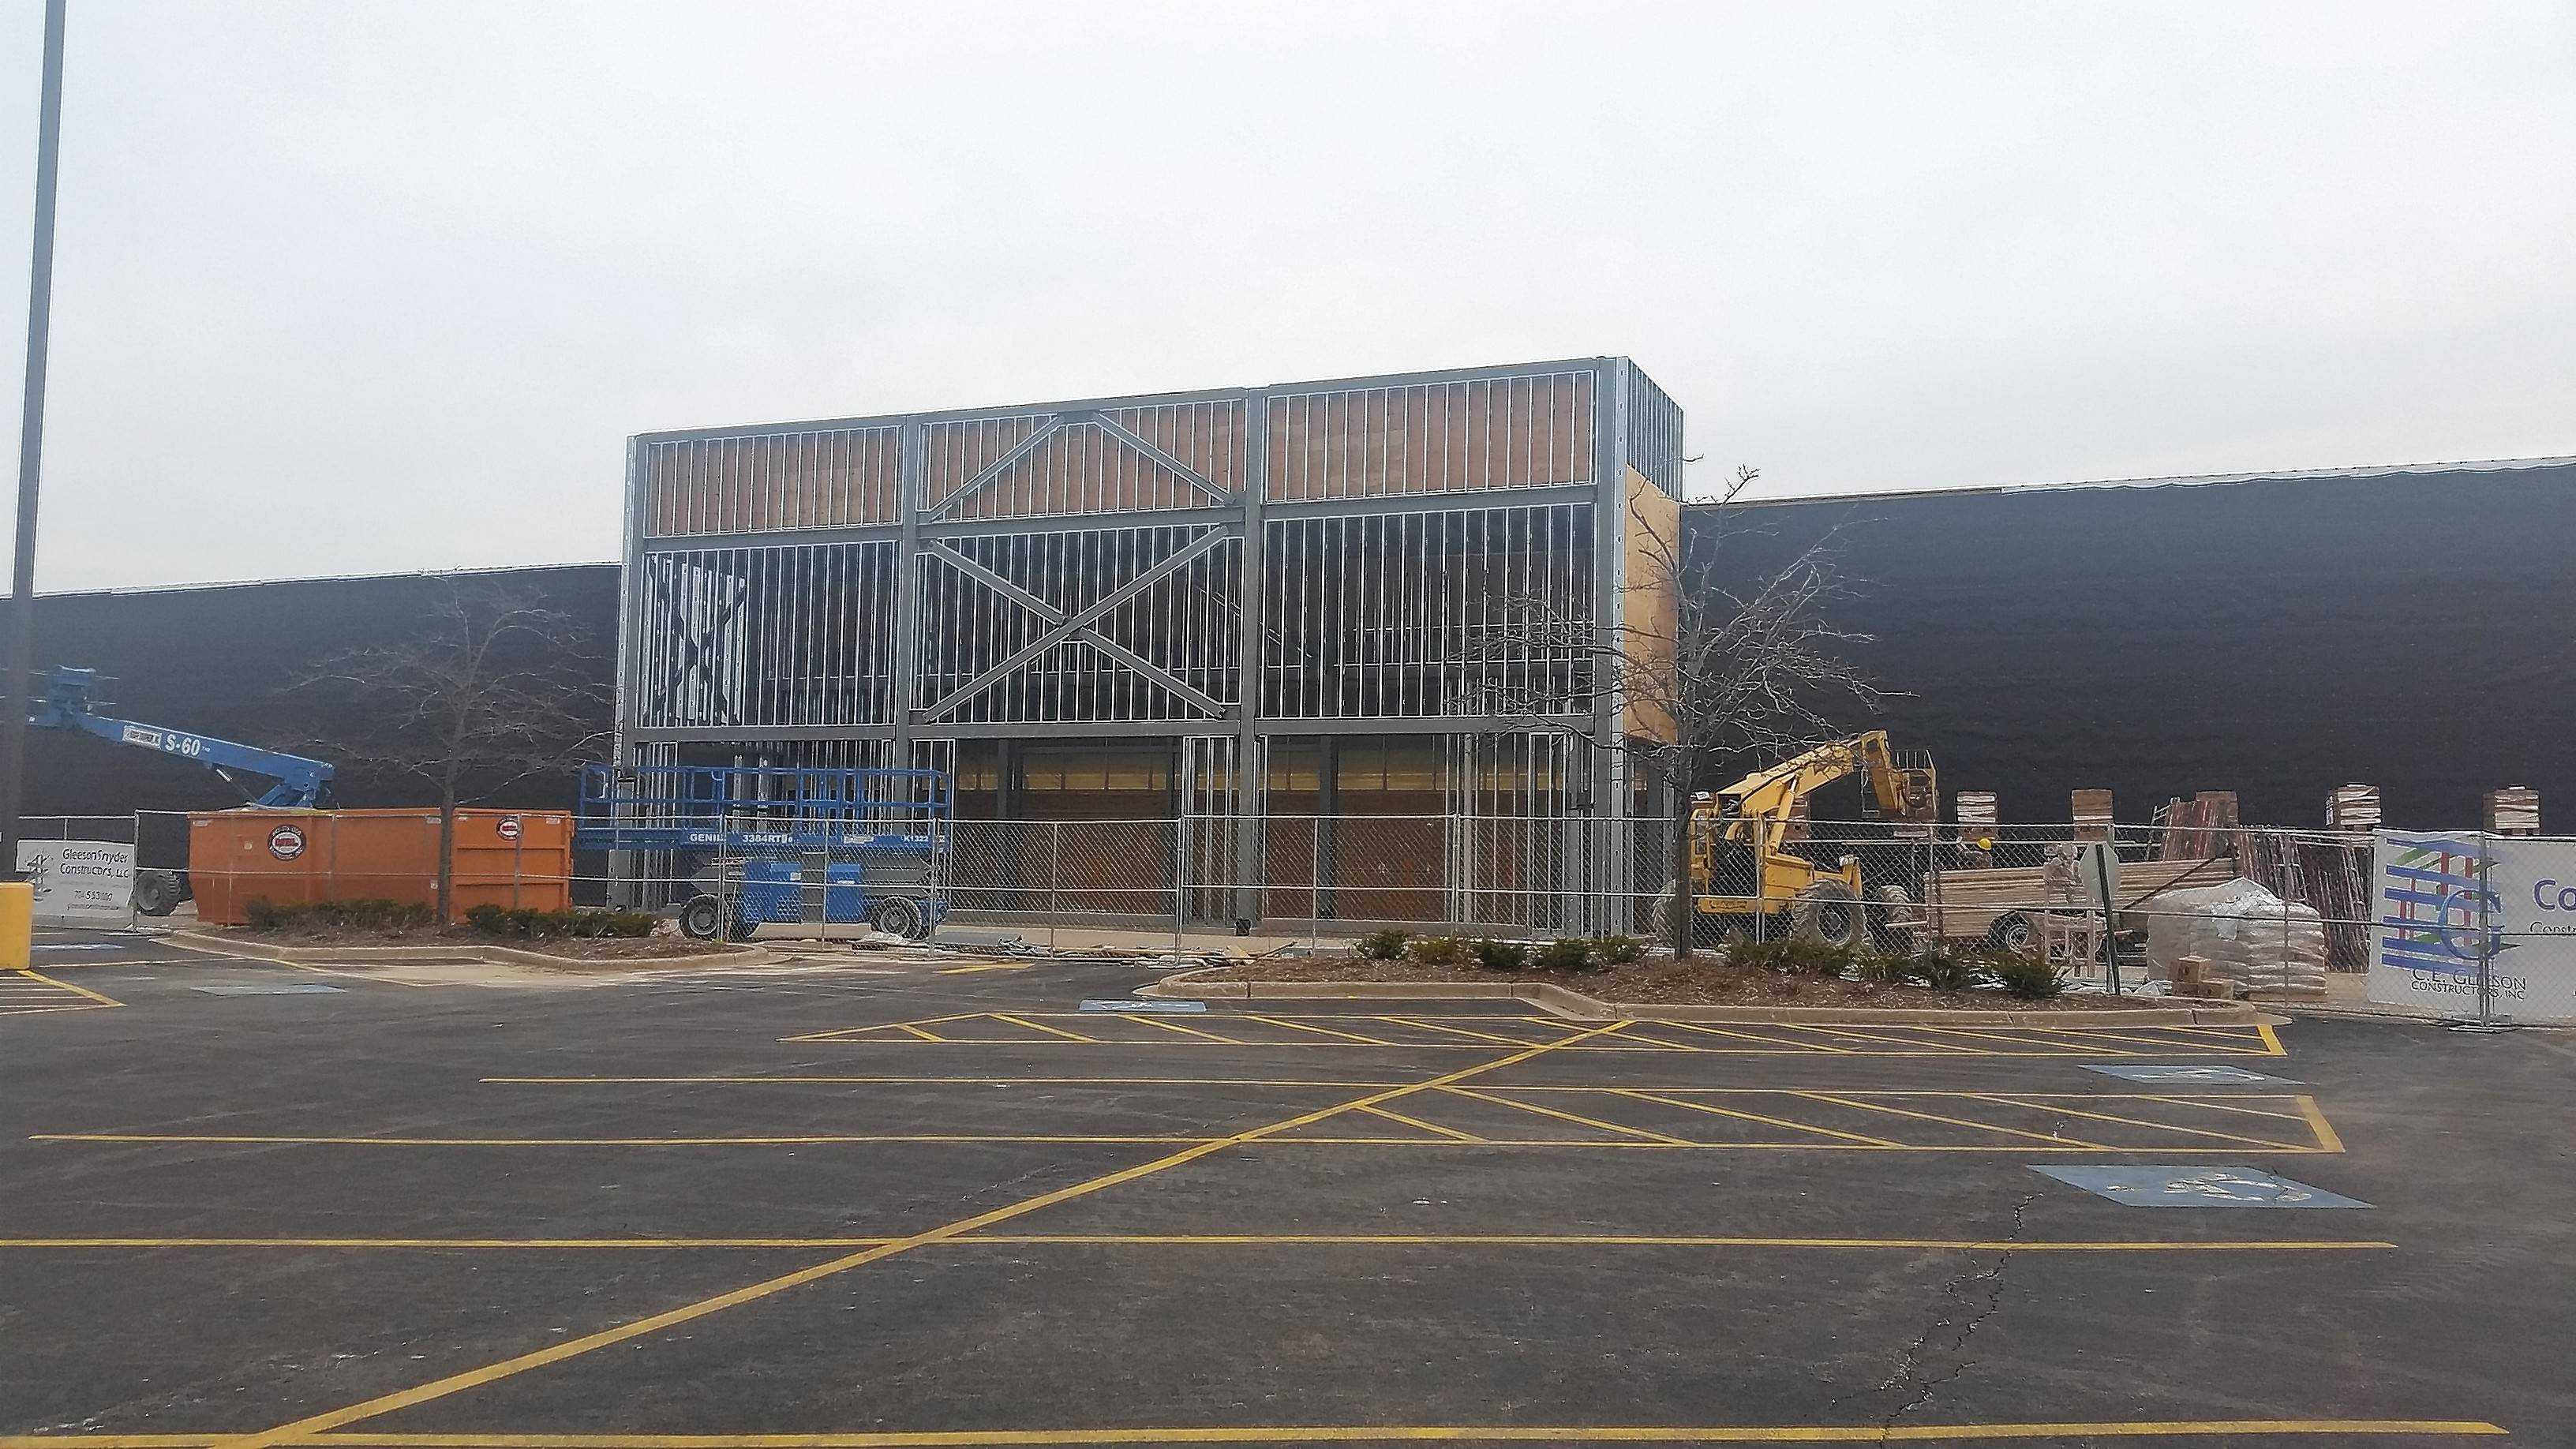 New Aldi to open in Palatine